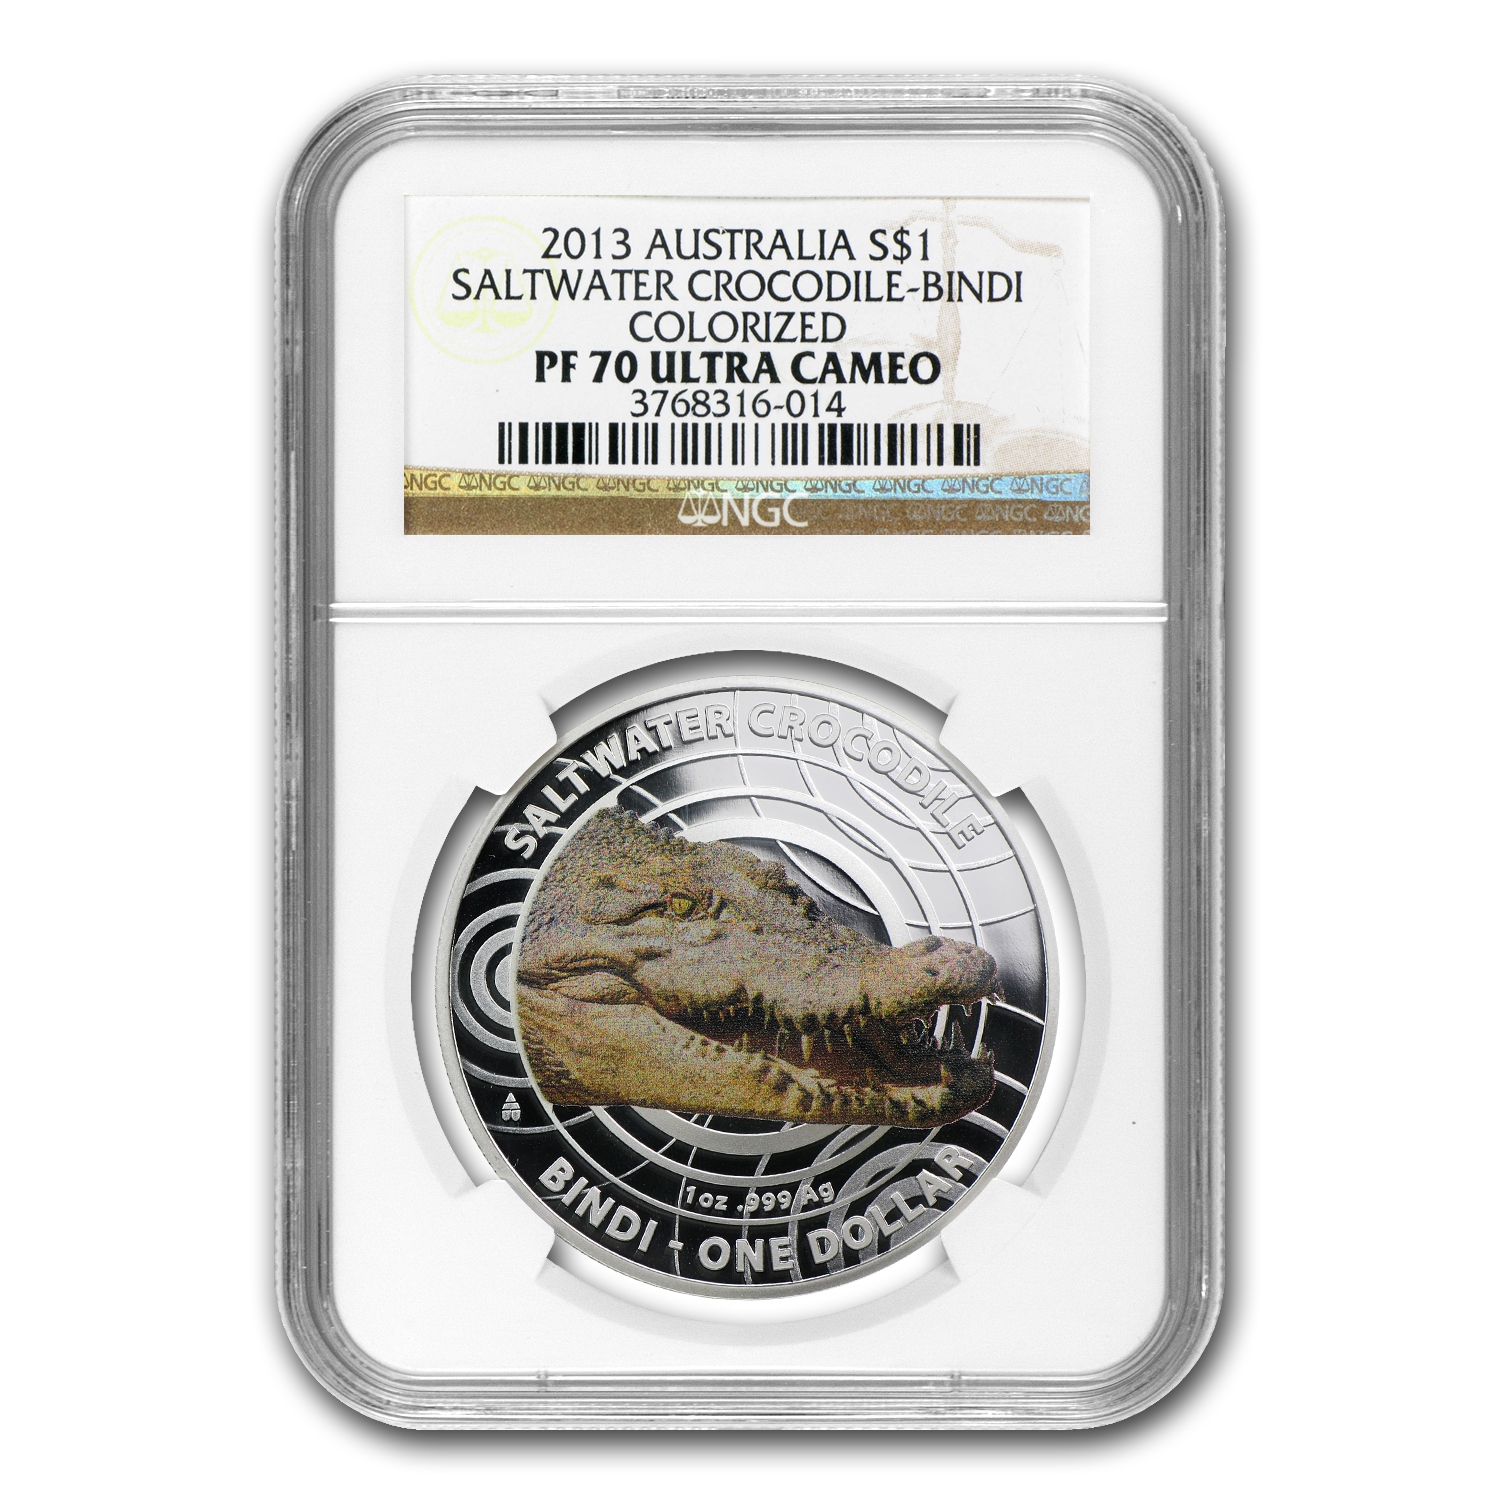 2013 Silver Crocodiles -Bindi - Colored - PF70 Ultra Cameo NGC